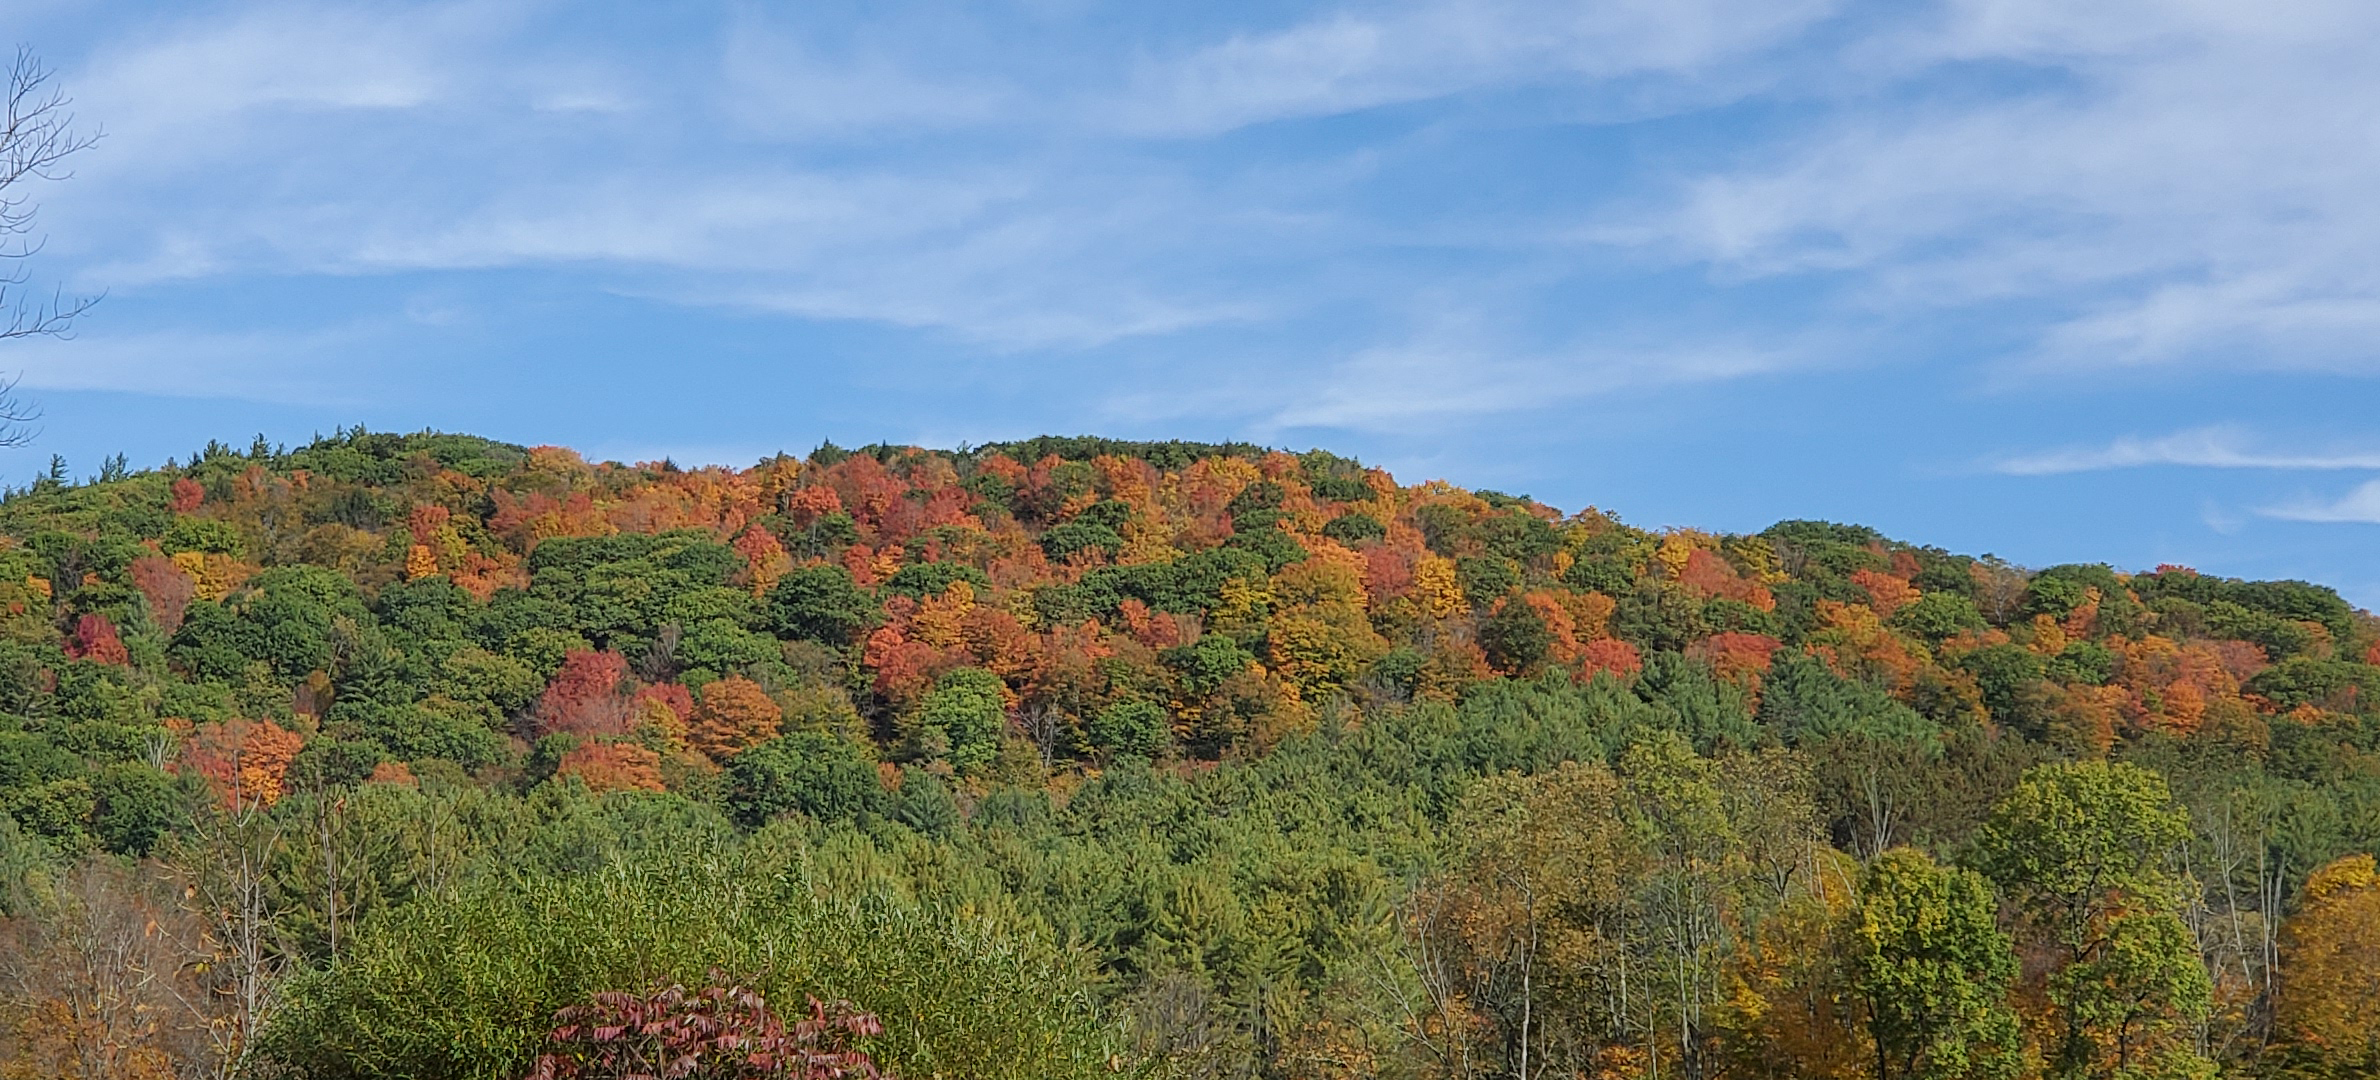 2019/10/08 - View from Rt 11 near Springfield, VT - by Renée-Marie Smith